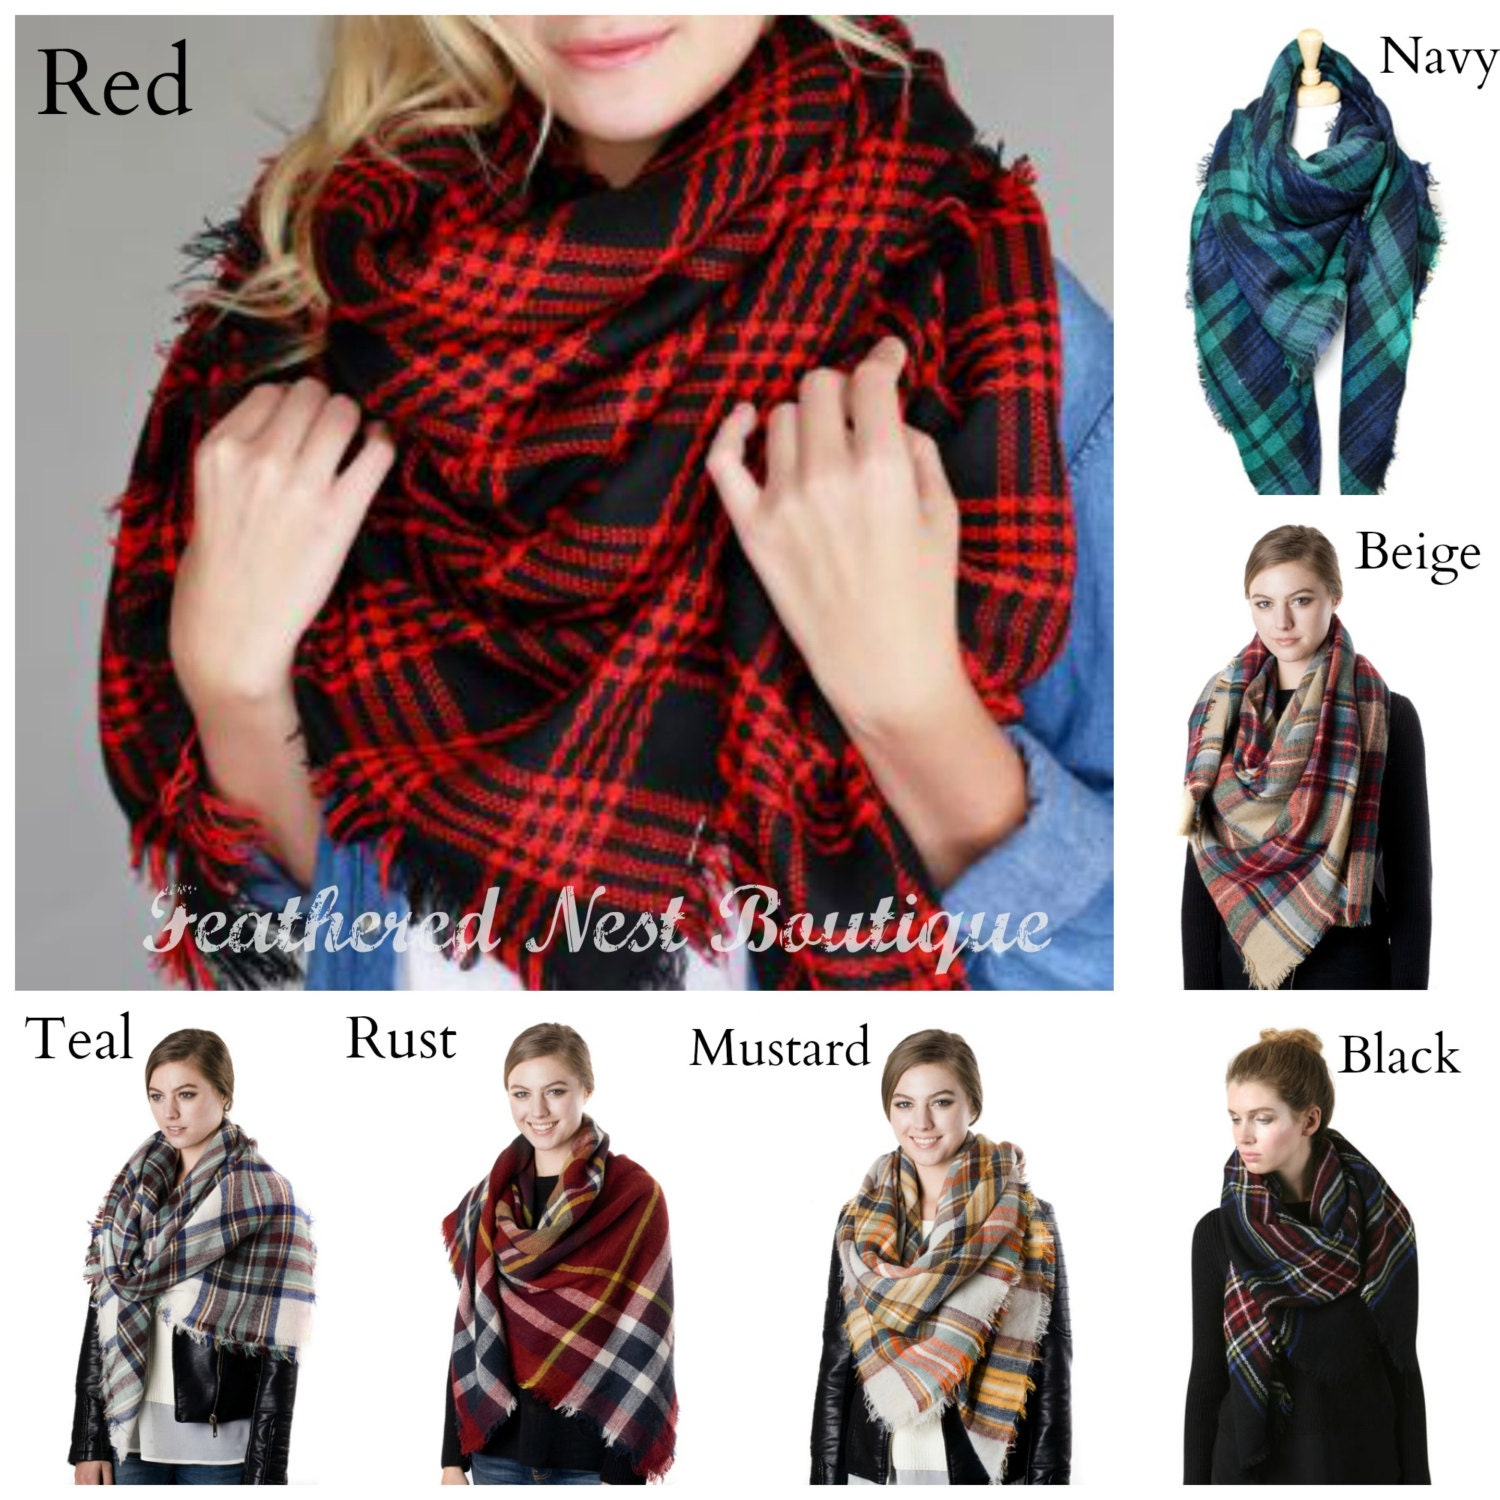 6e1b94f7eb883 Monogrammed Plaid Blanket Scarf - Monogram Plaid Blanket Scarf - 16 Monogram  Styles to Choose From - Christmas Gift Idea - Tailgate Scarf